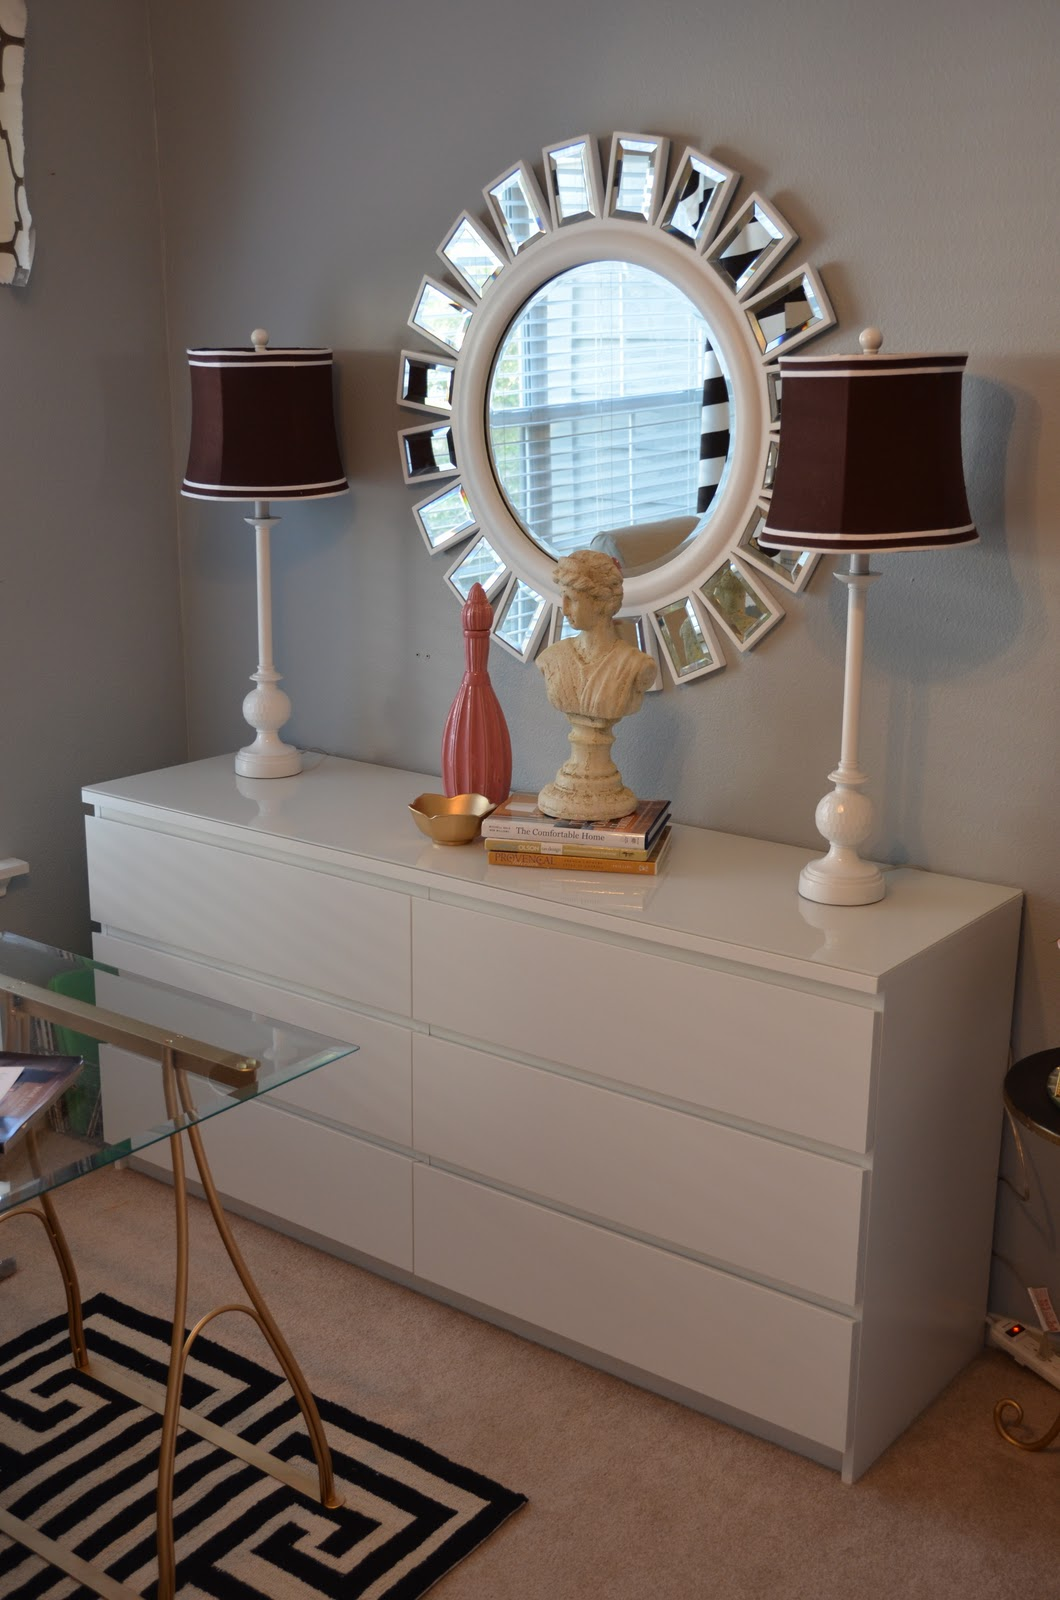 ikea malm dresser goes glam amanda carol interiors. Black Bedroom Furniture Sets. Home Design Ideas